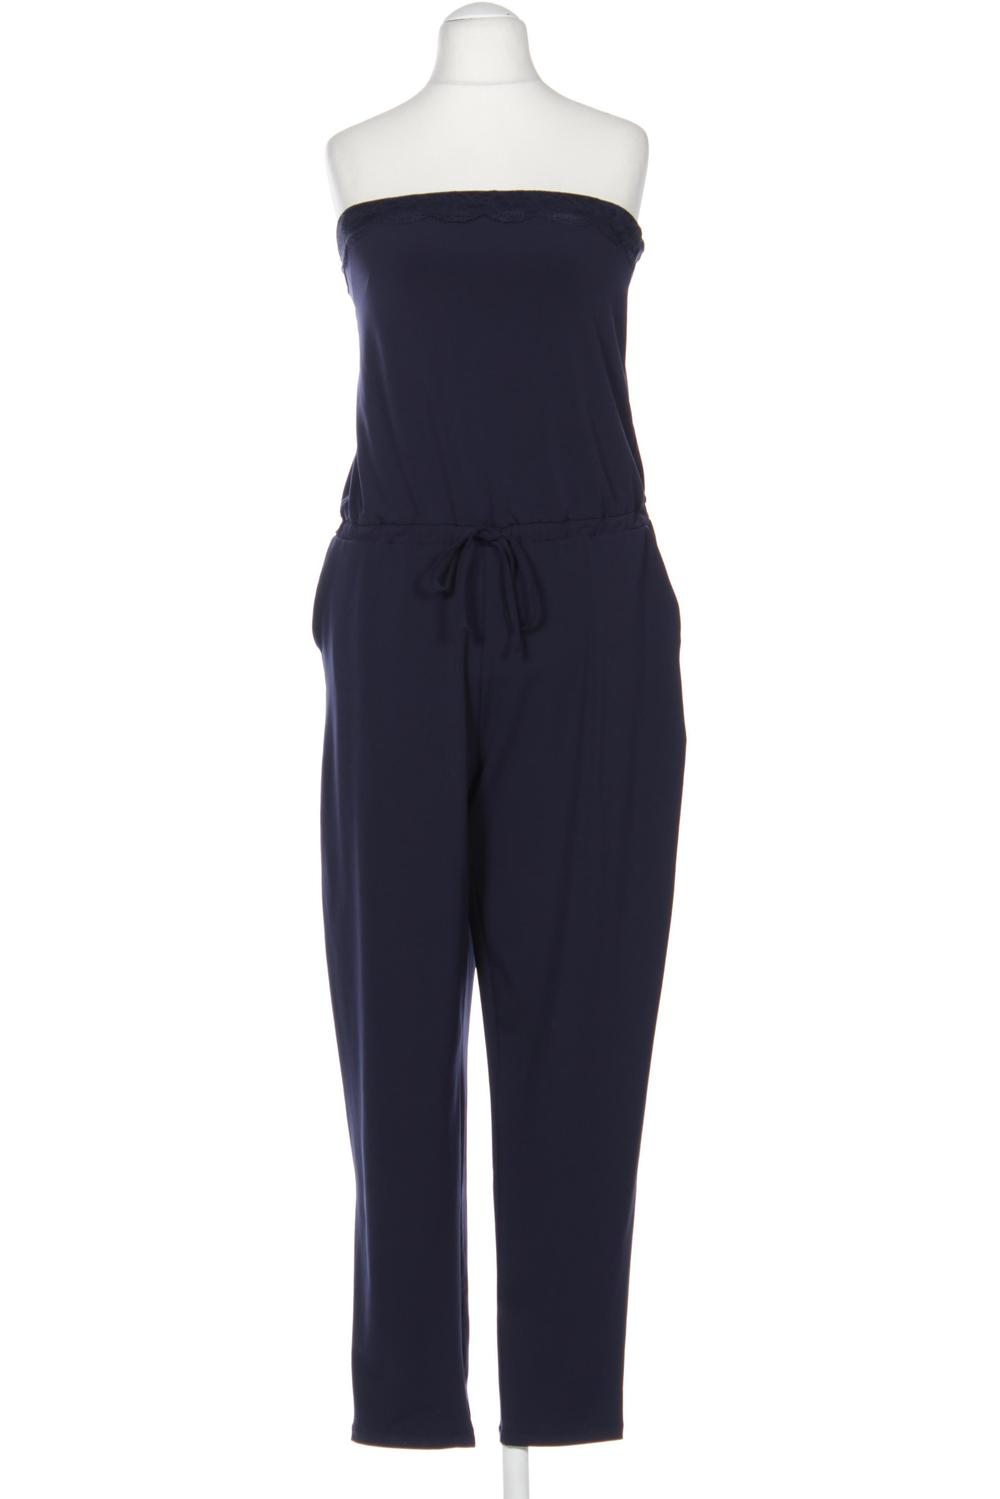 esprit jumpsuit overall damen gr int l elasthan baumwolle blau baffb36 ebay. Black Bedroom Furniture Sets. Home Design Ideas